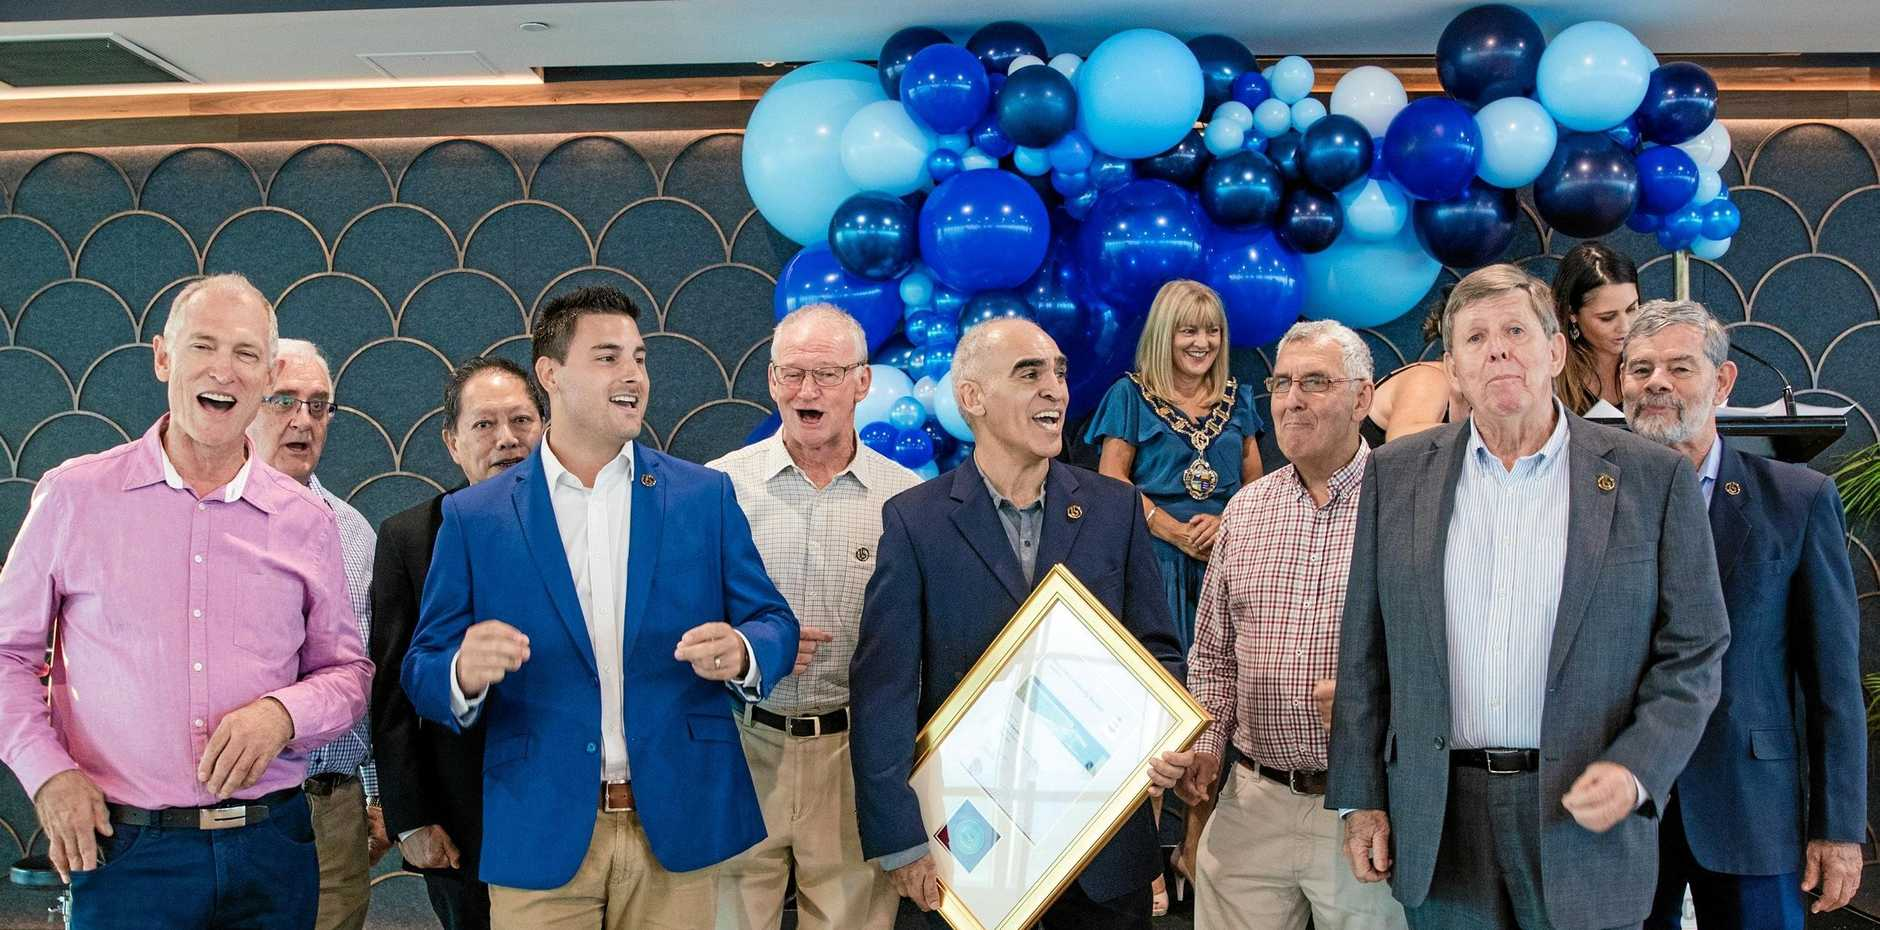 SONG IN THEIR HEARTS: Senior members of The Blenders chorus, headed by president Damon Newman, are urged into song as they accept the Gold Coast City Council Community Service Award.